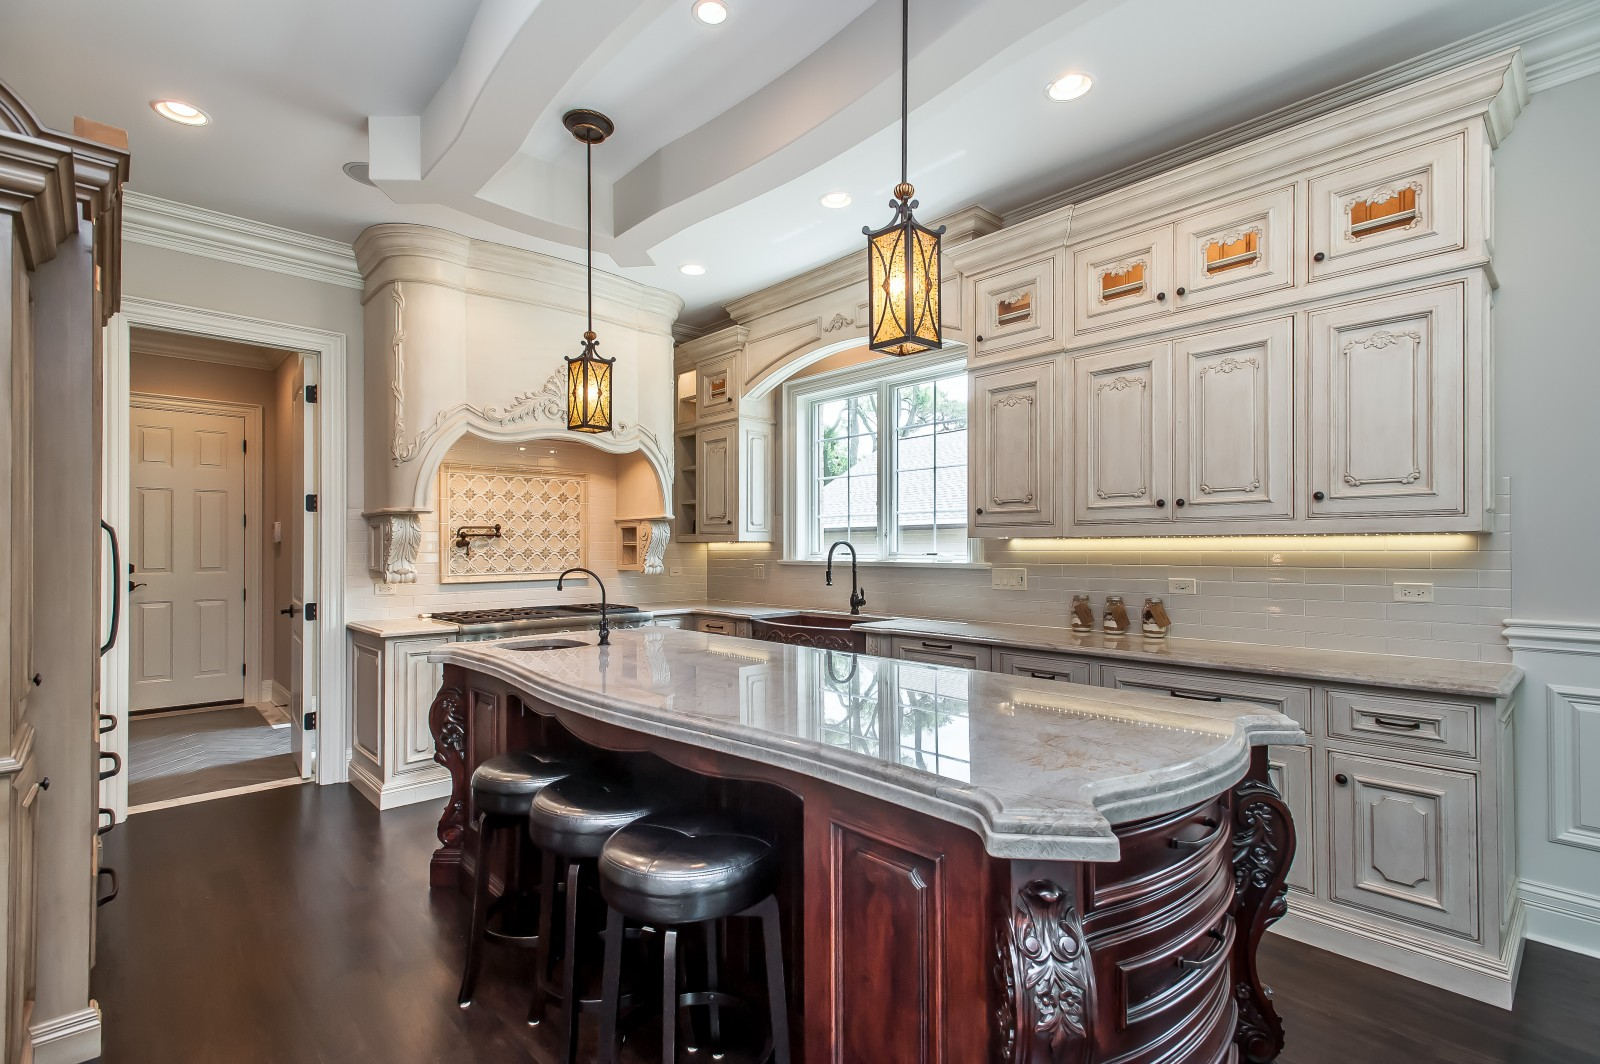 Ddk Kitchen Design Group Glenview Il Chicagoland Illinois Custom Home Builders Custom Home